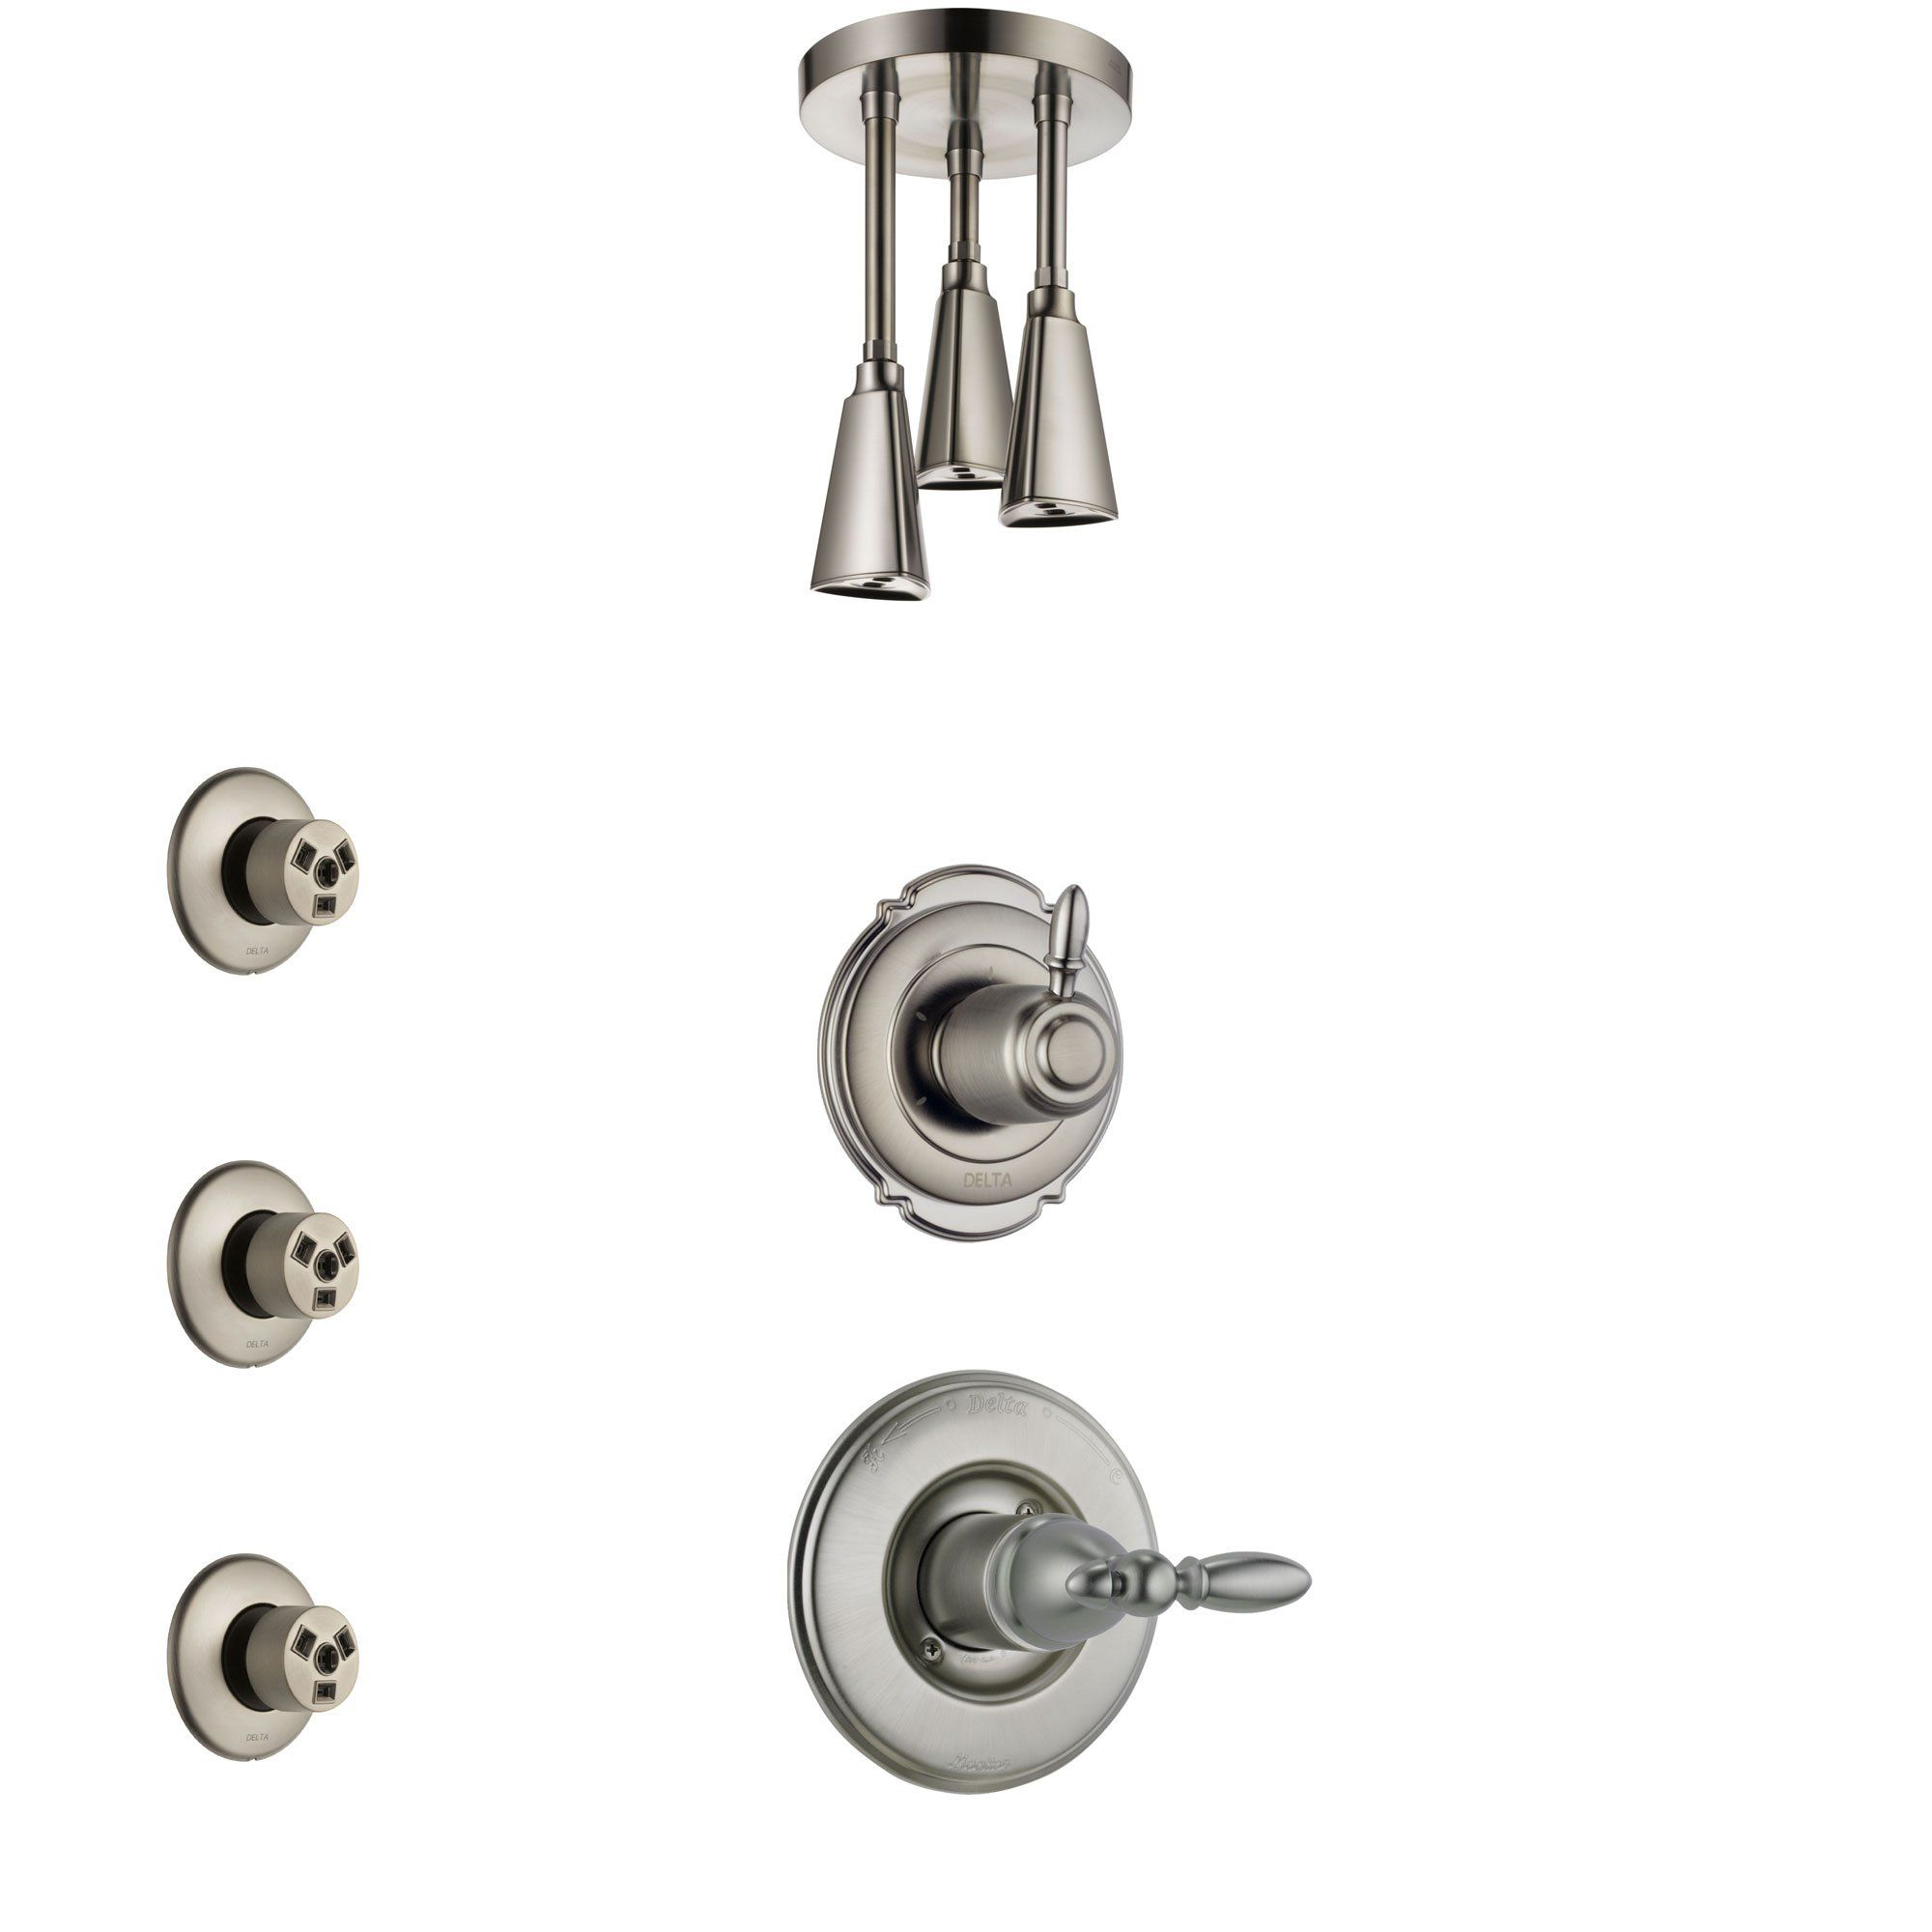 Delta Victorian Stainless Steel Finish Shower System With Control